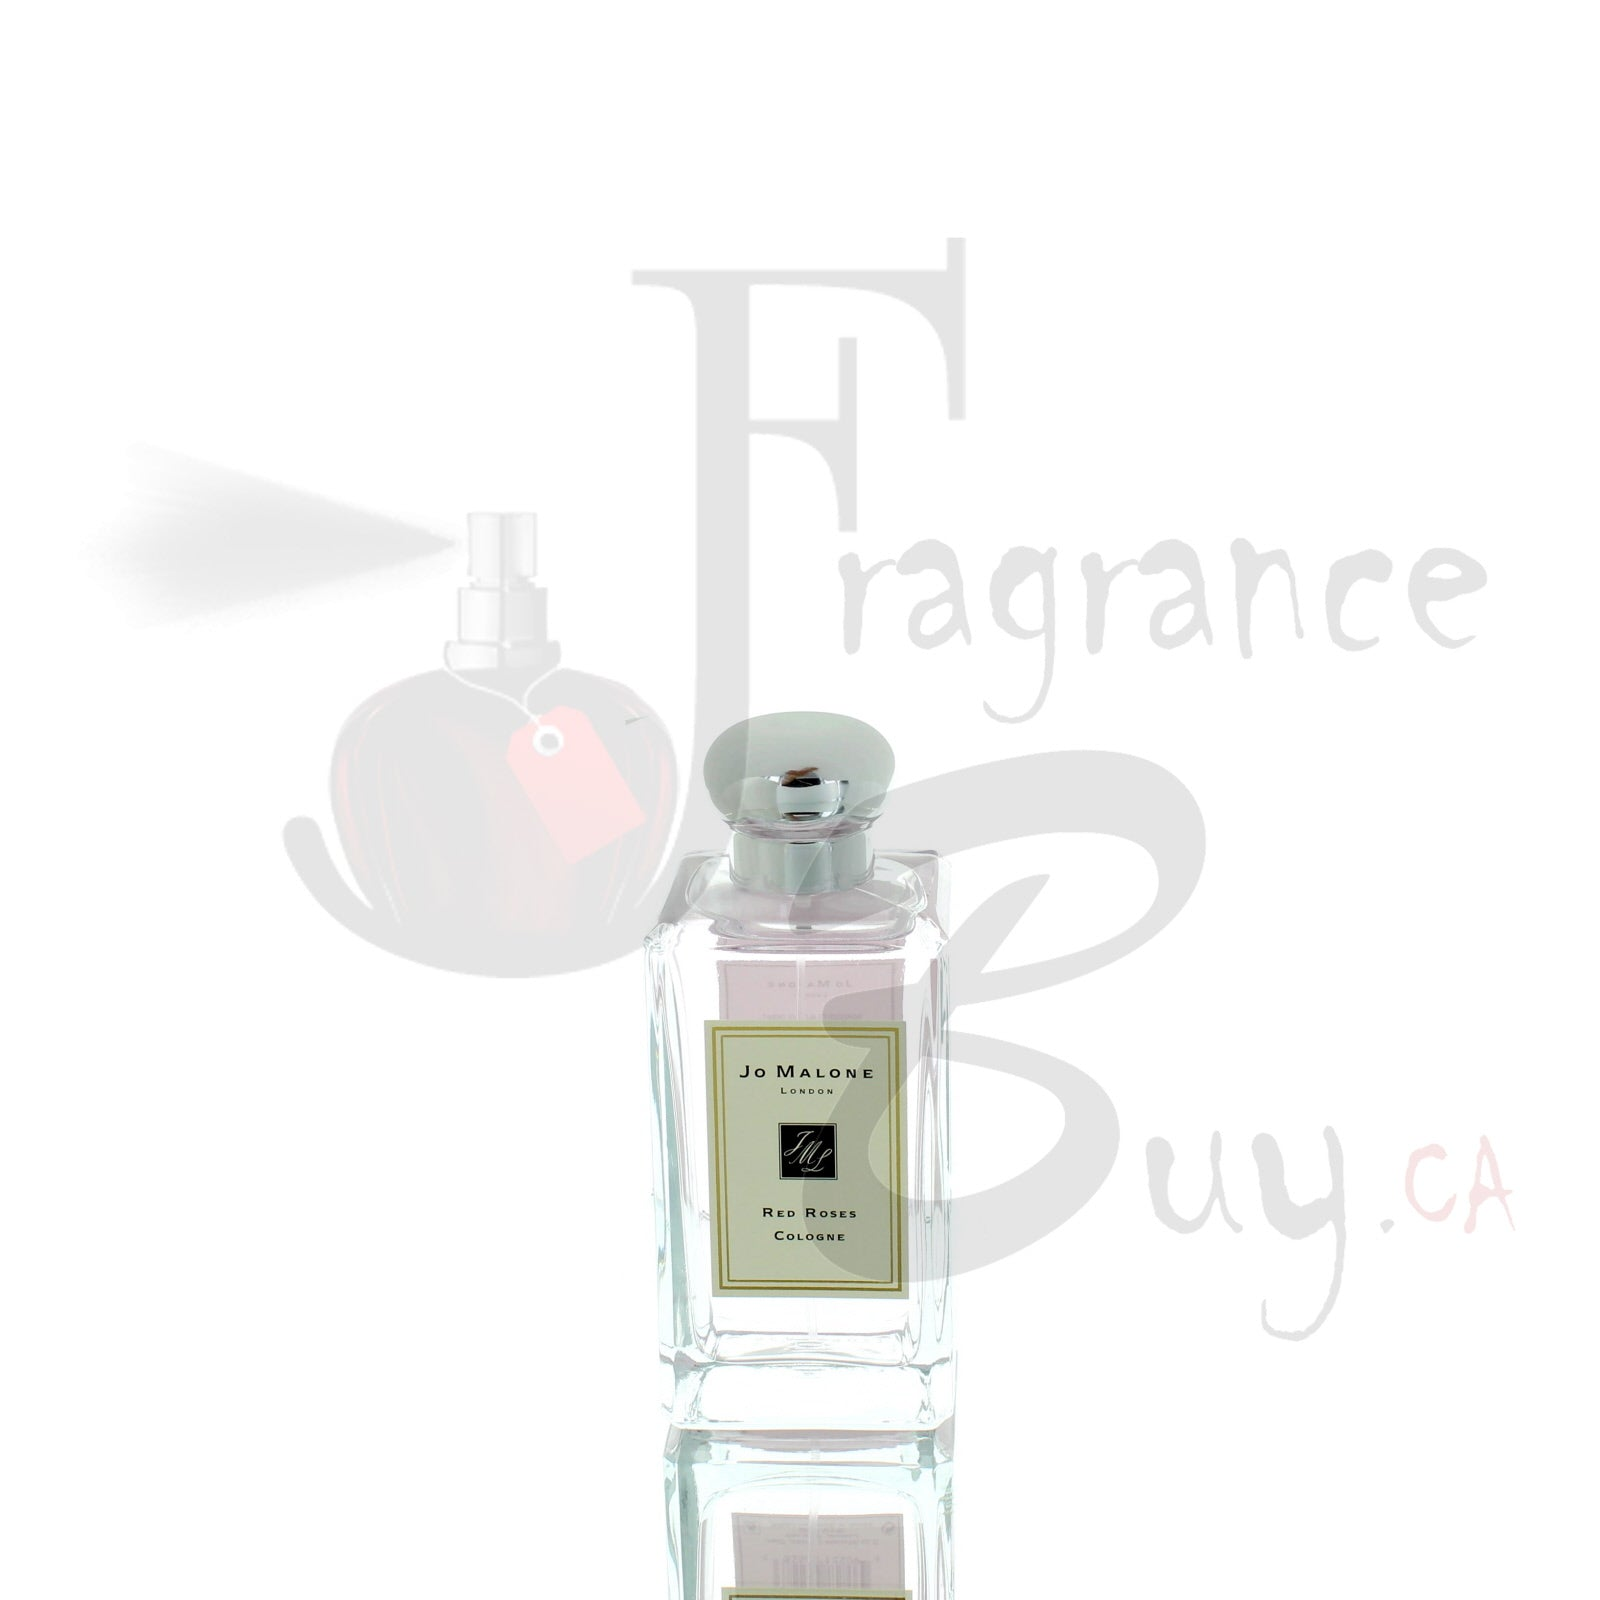 Jo Malone Red Roses For Woman